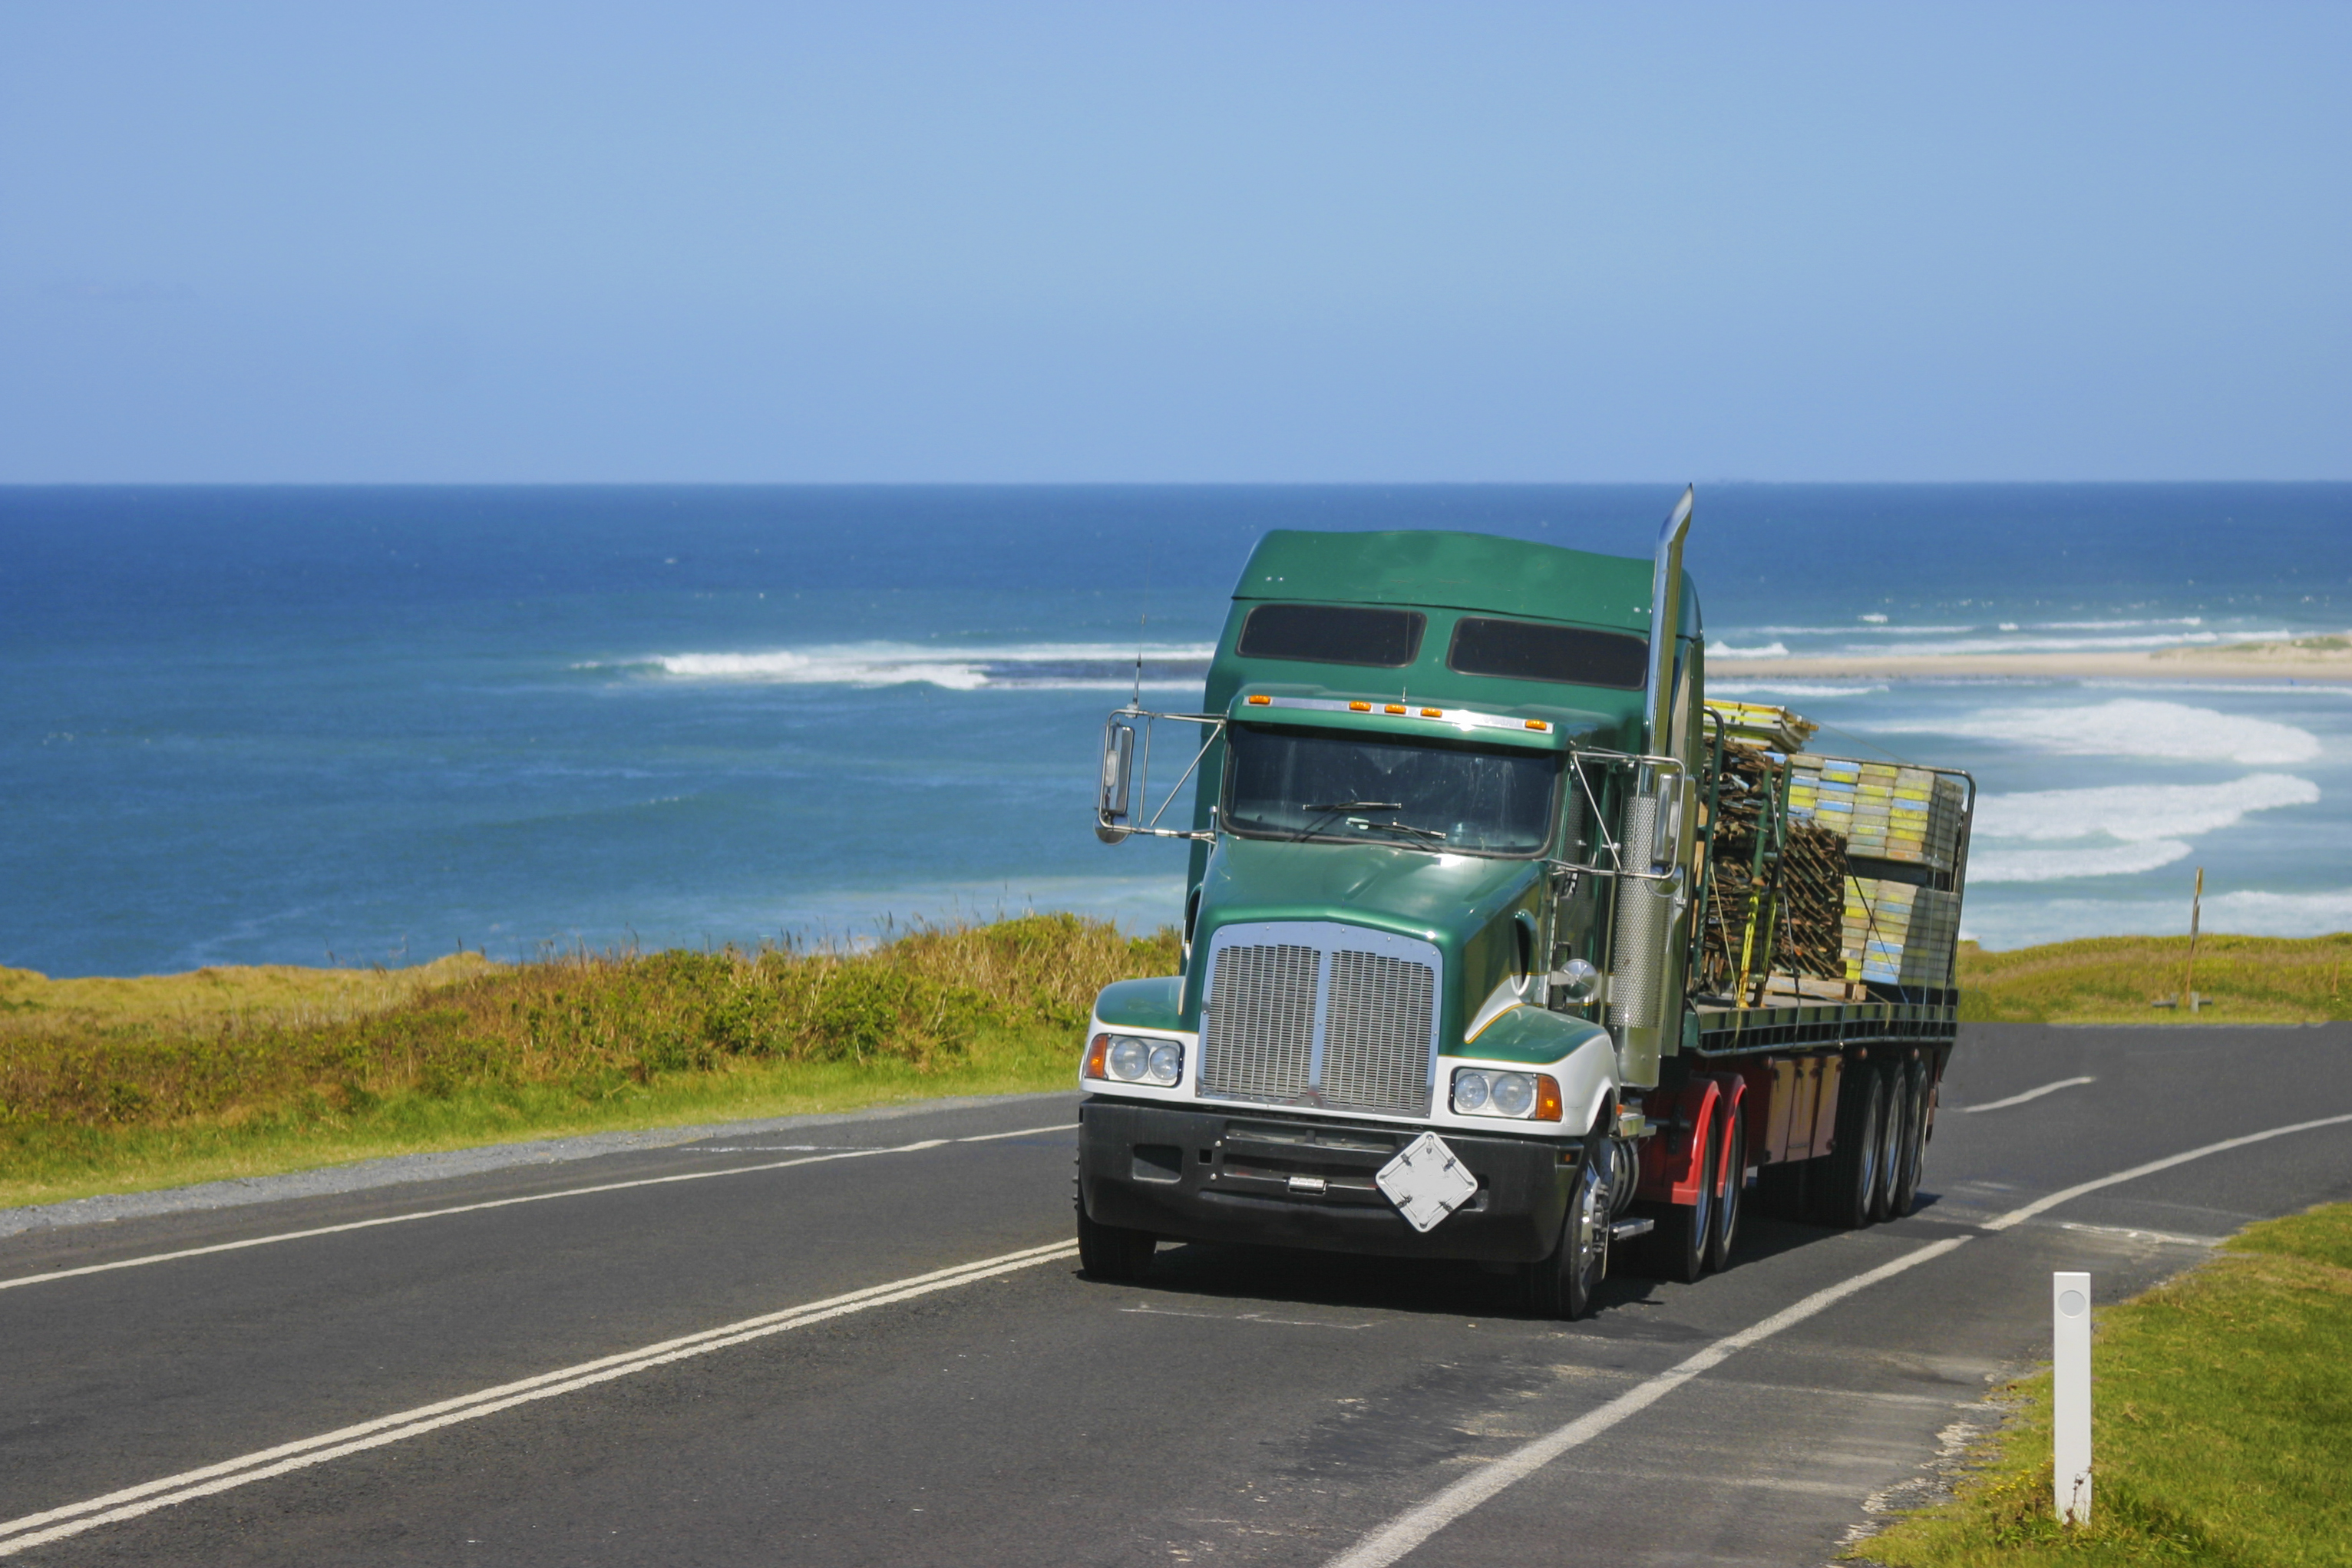 A truckie on the road in Australia